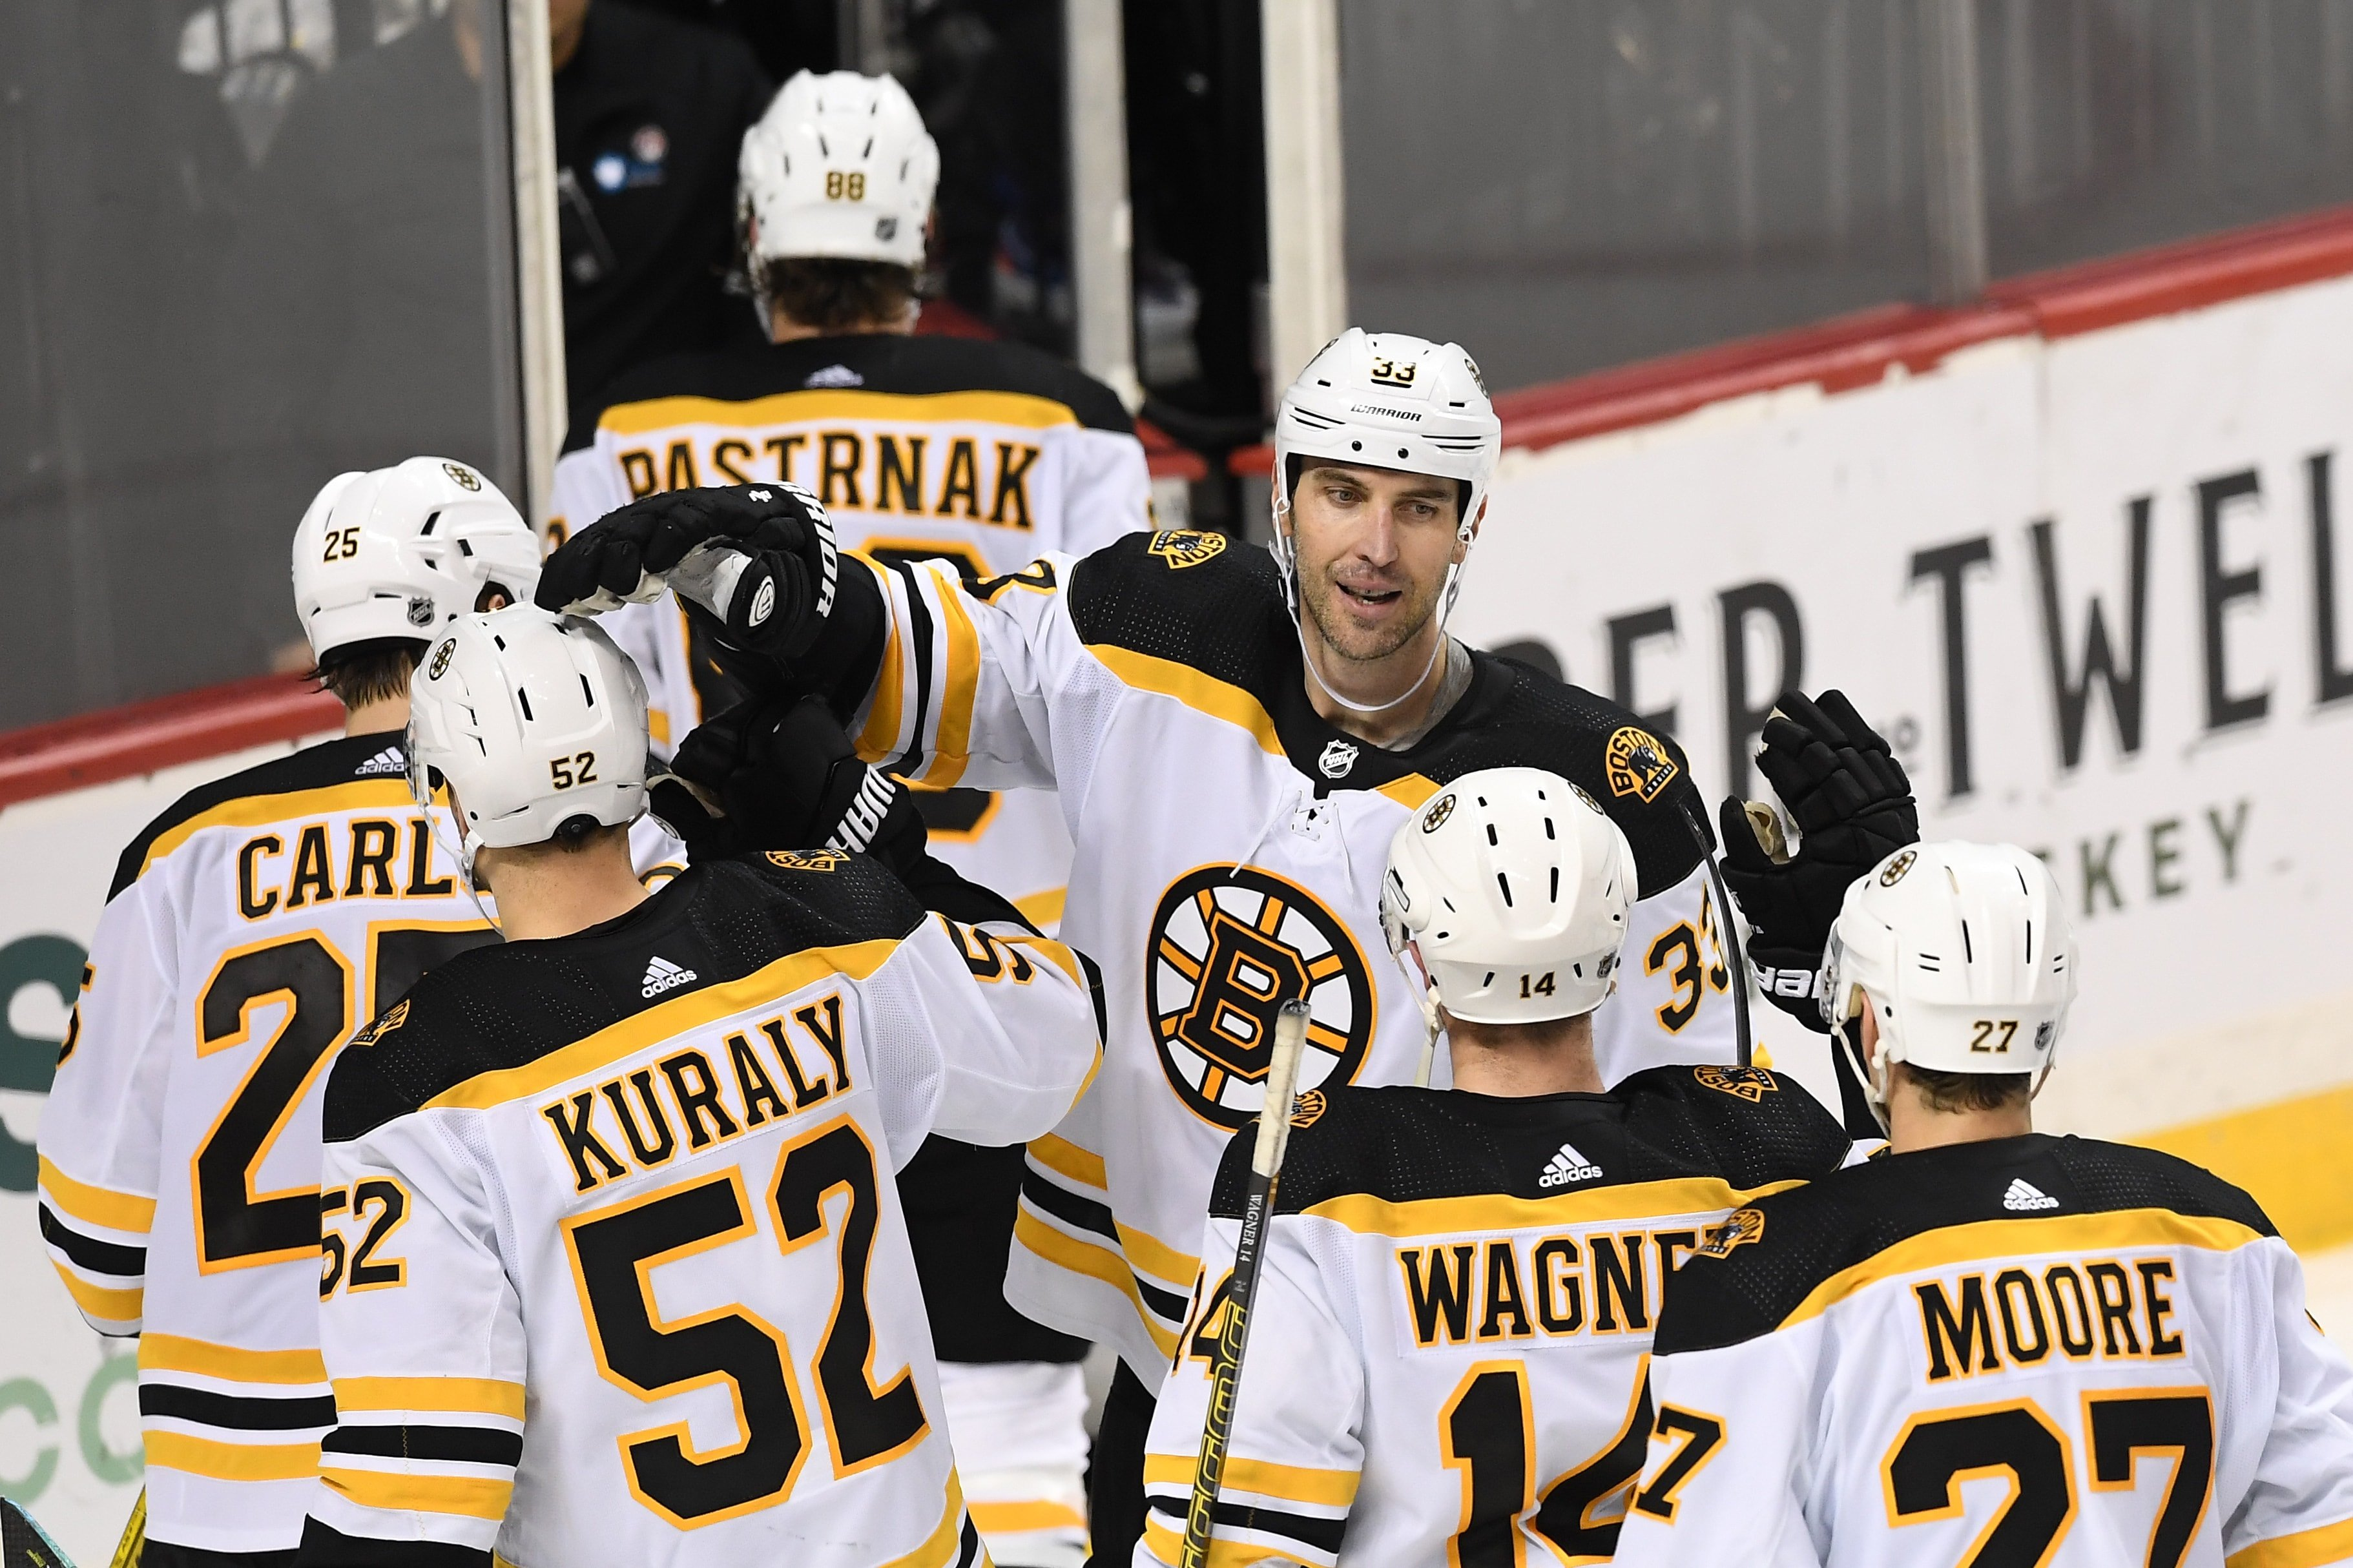 Bruins set franchise record, move atop NHL standings with overtime win over Isles